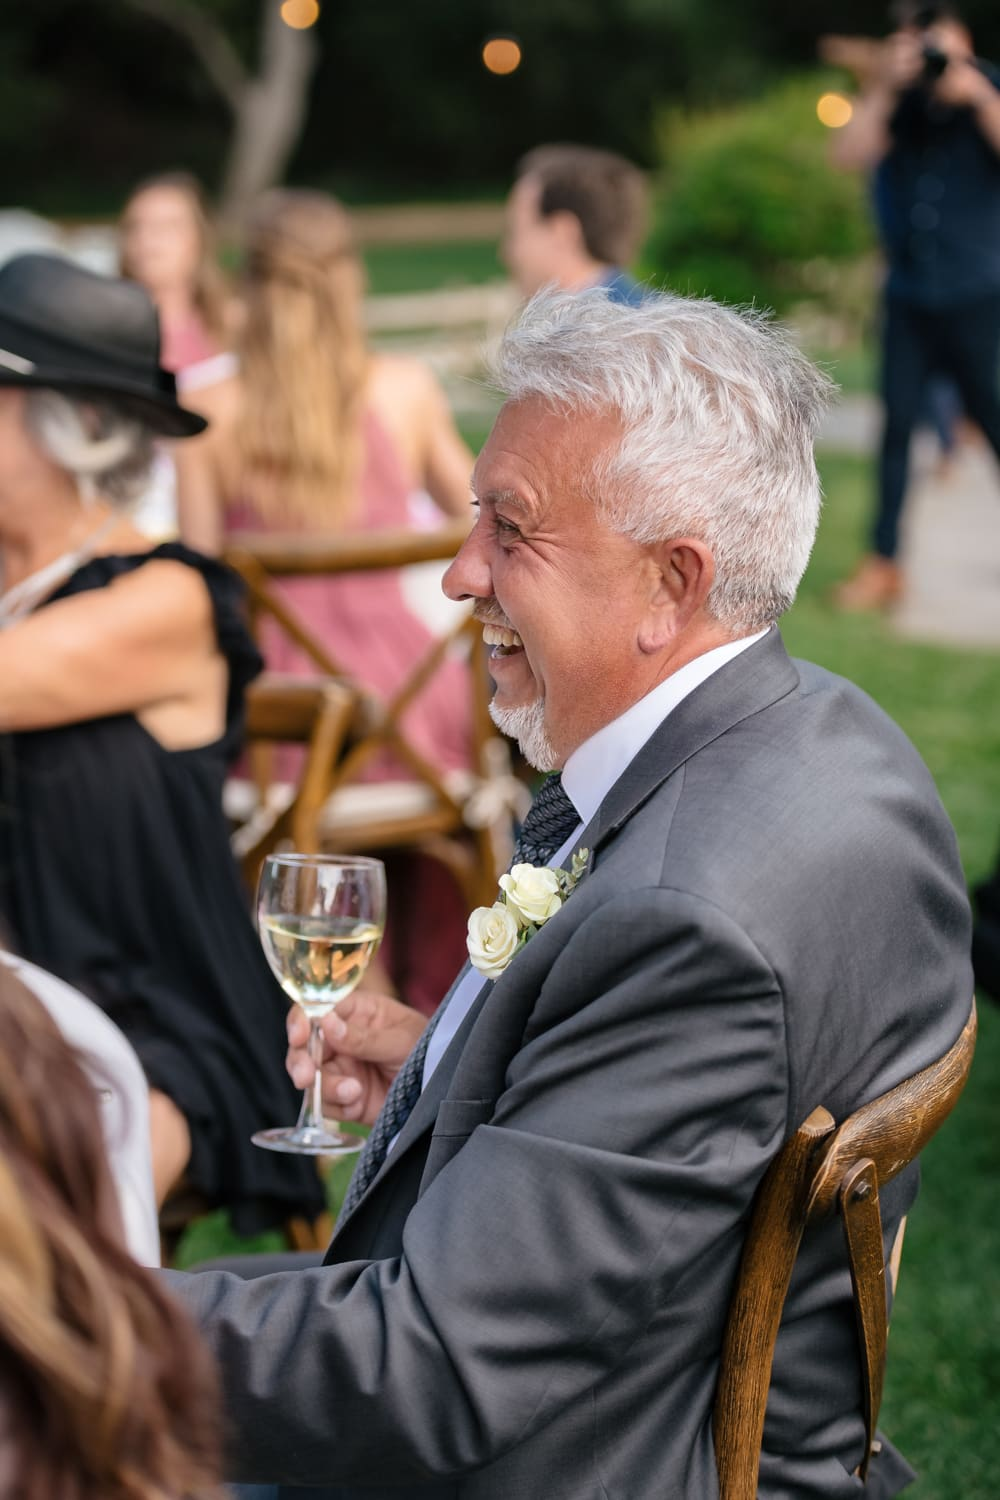 Guests laughing during toasts at Temecula Creek Inn wedding